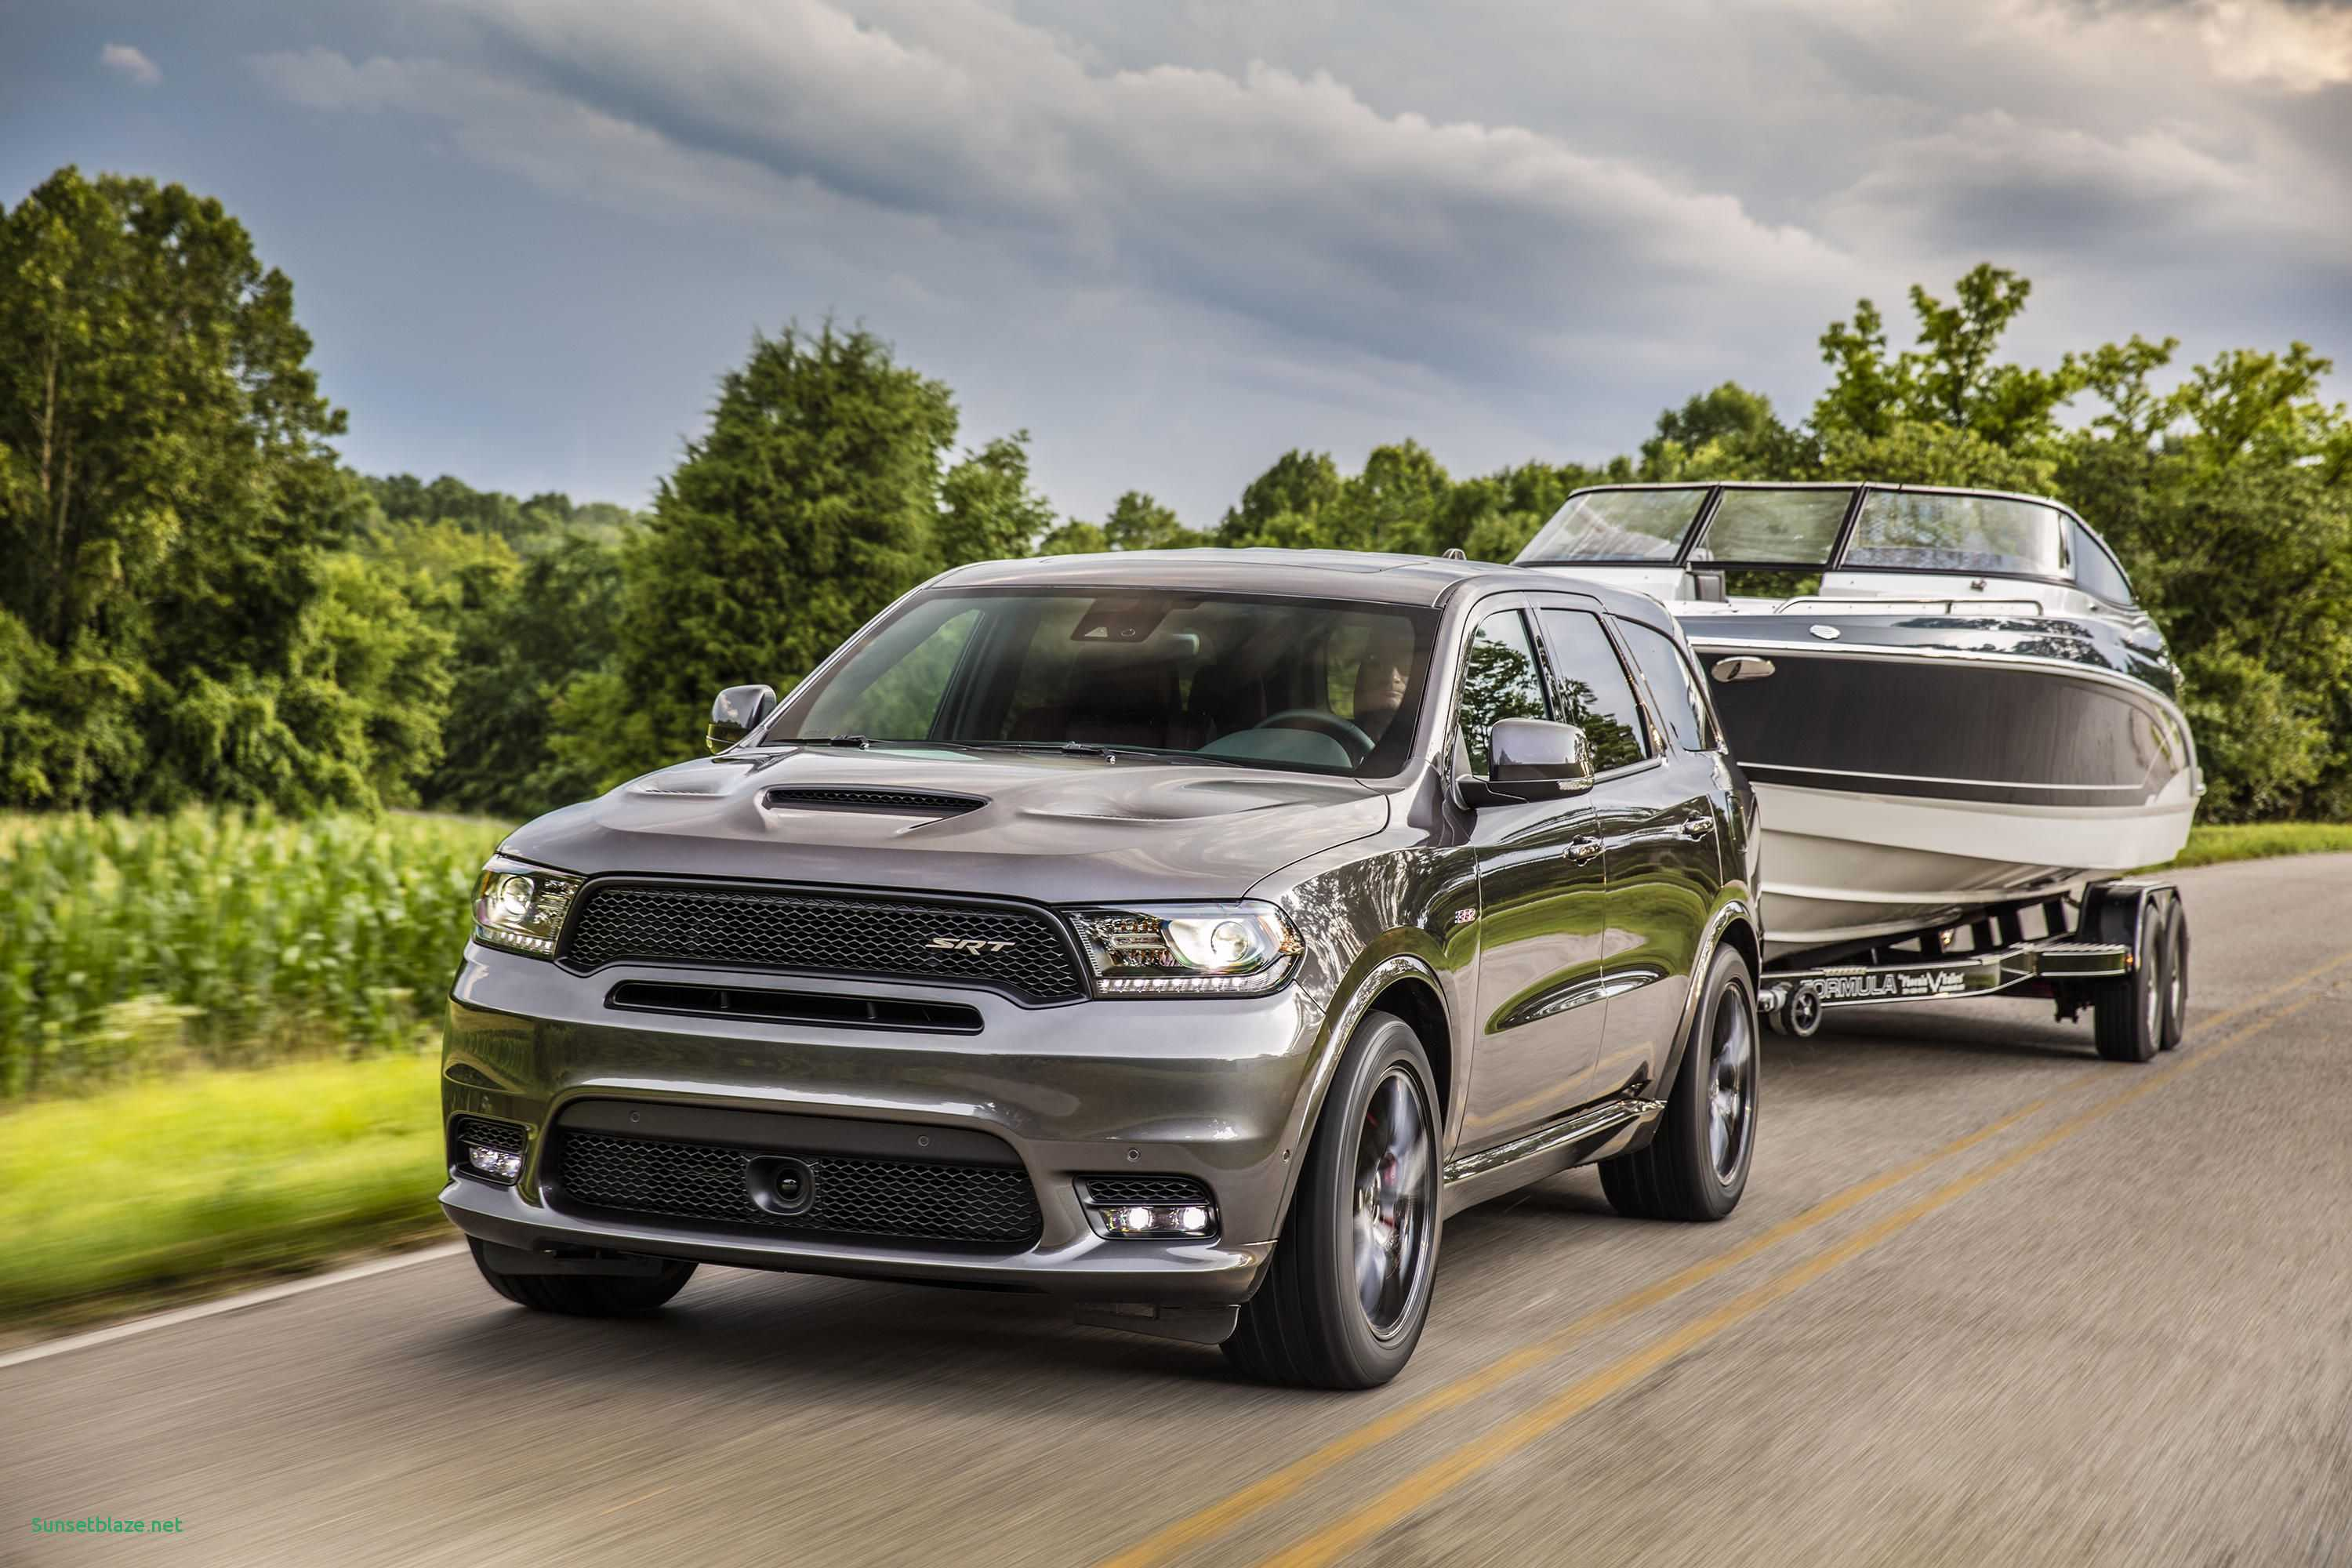 50 All New 2019 Dodge Durango Diesel Srt8 Rumors